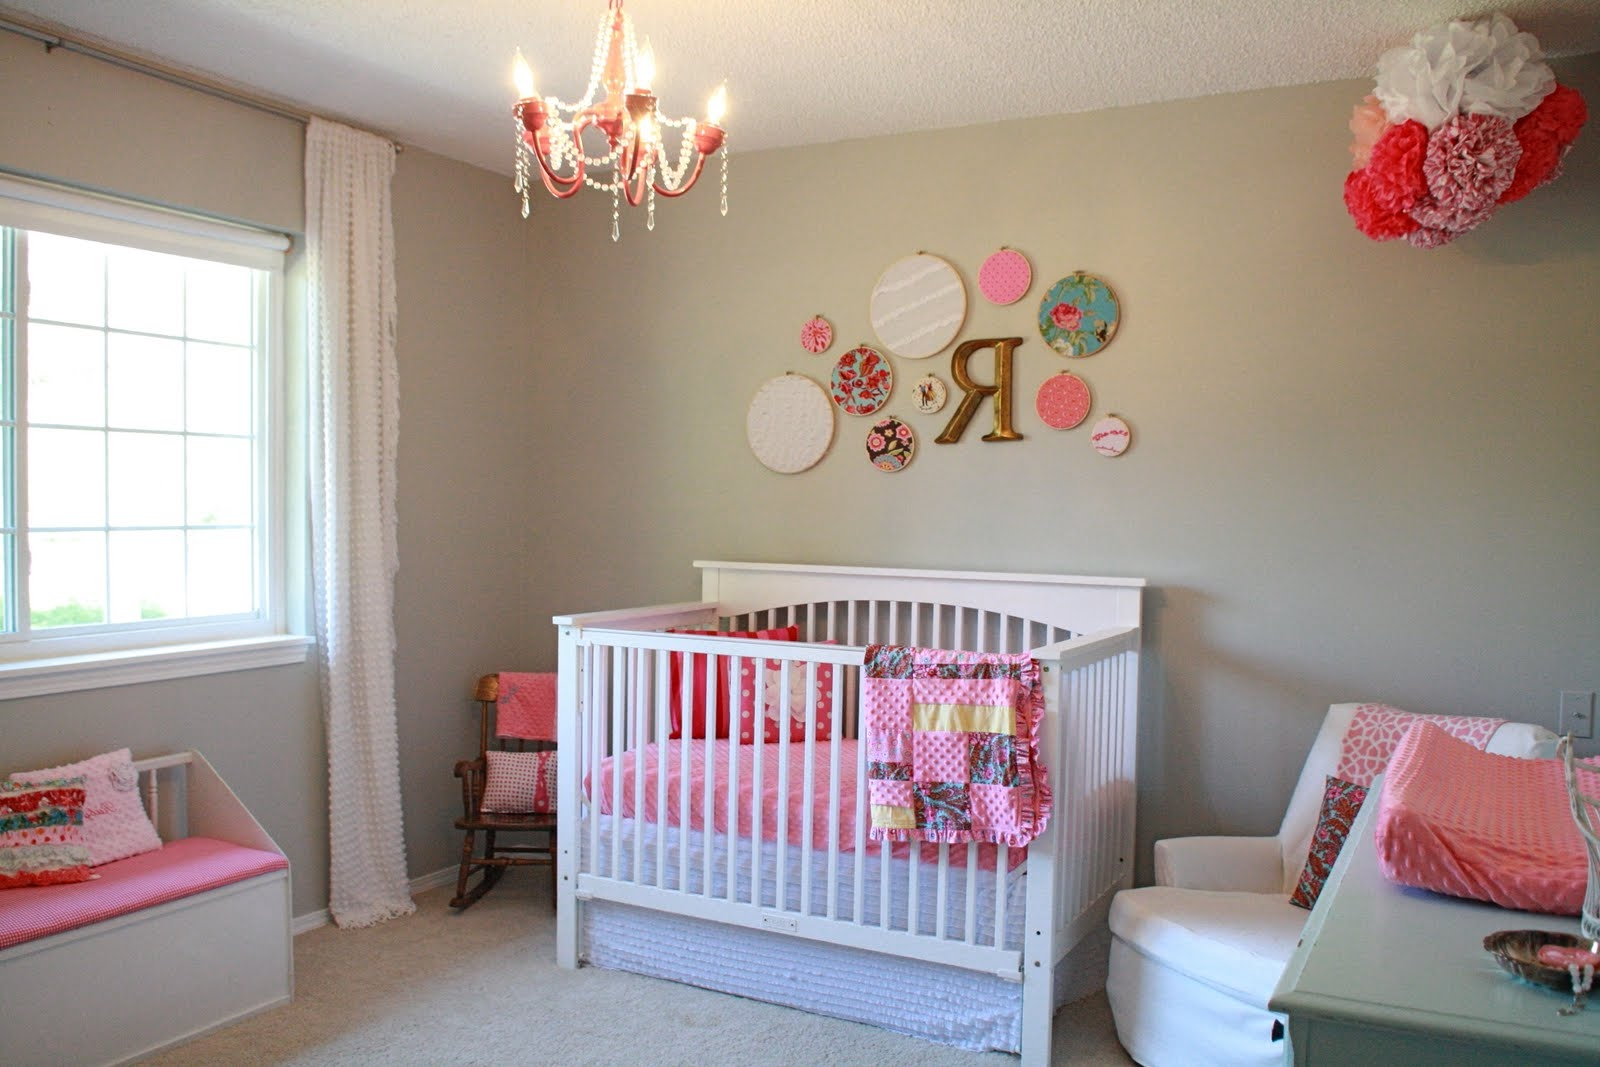 37+ Cute Baby Girl Nursery Ideas for Small Rooms - e - book